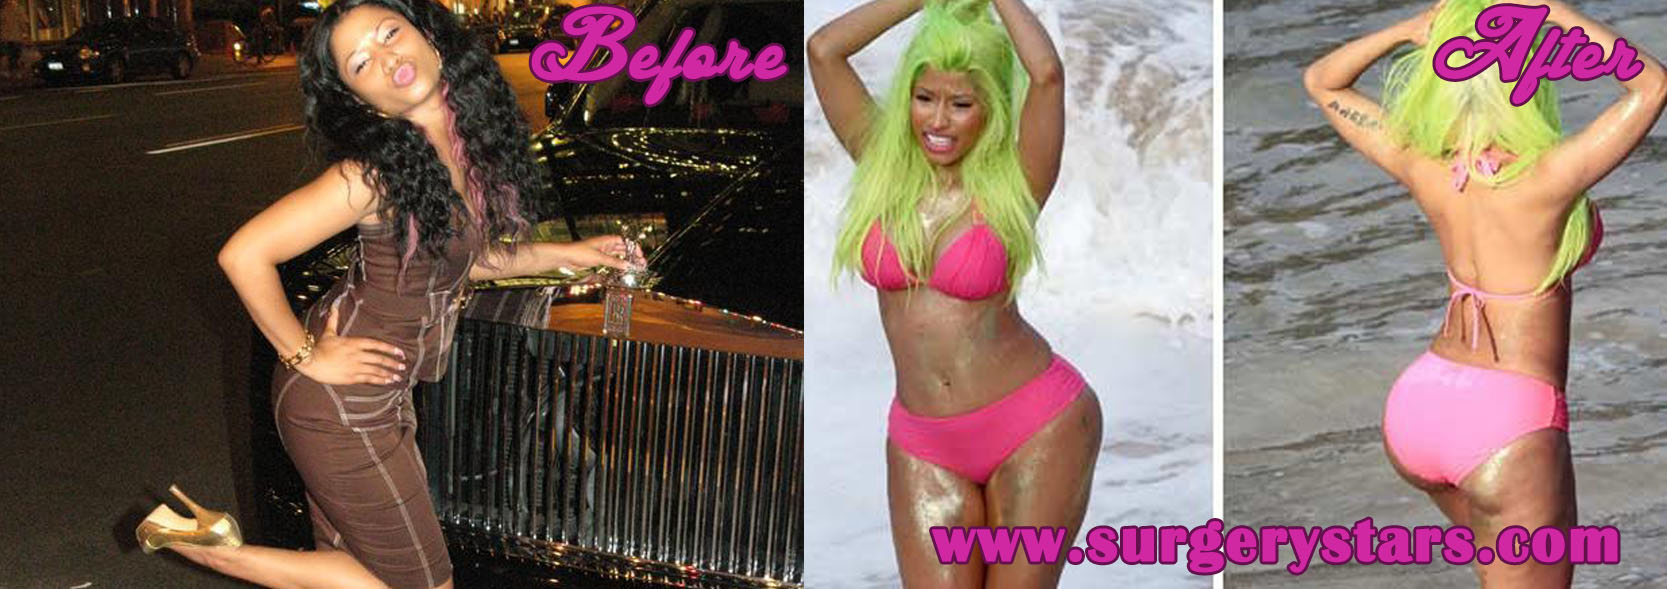 Before And After Butt Implants 6